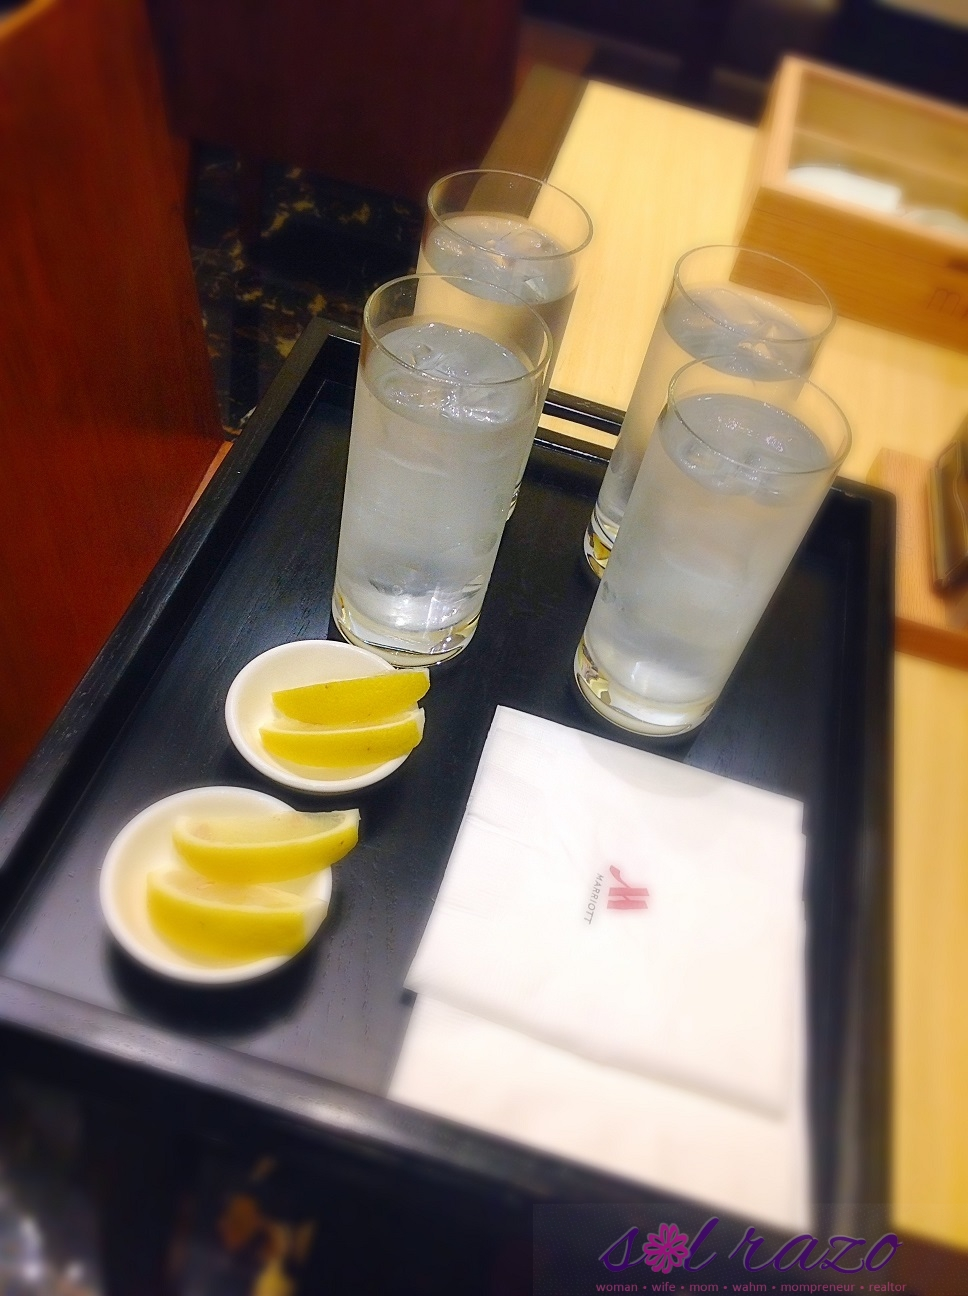 mian marriott cold water